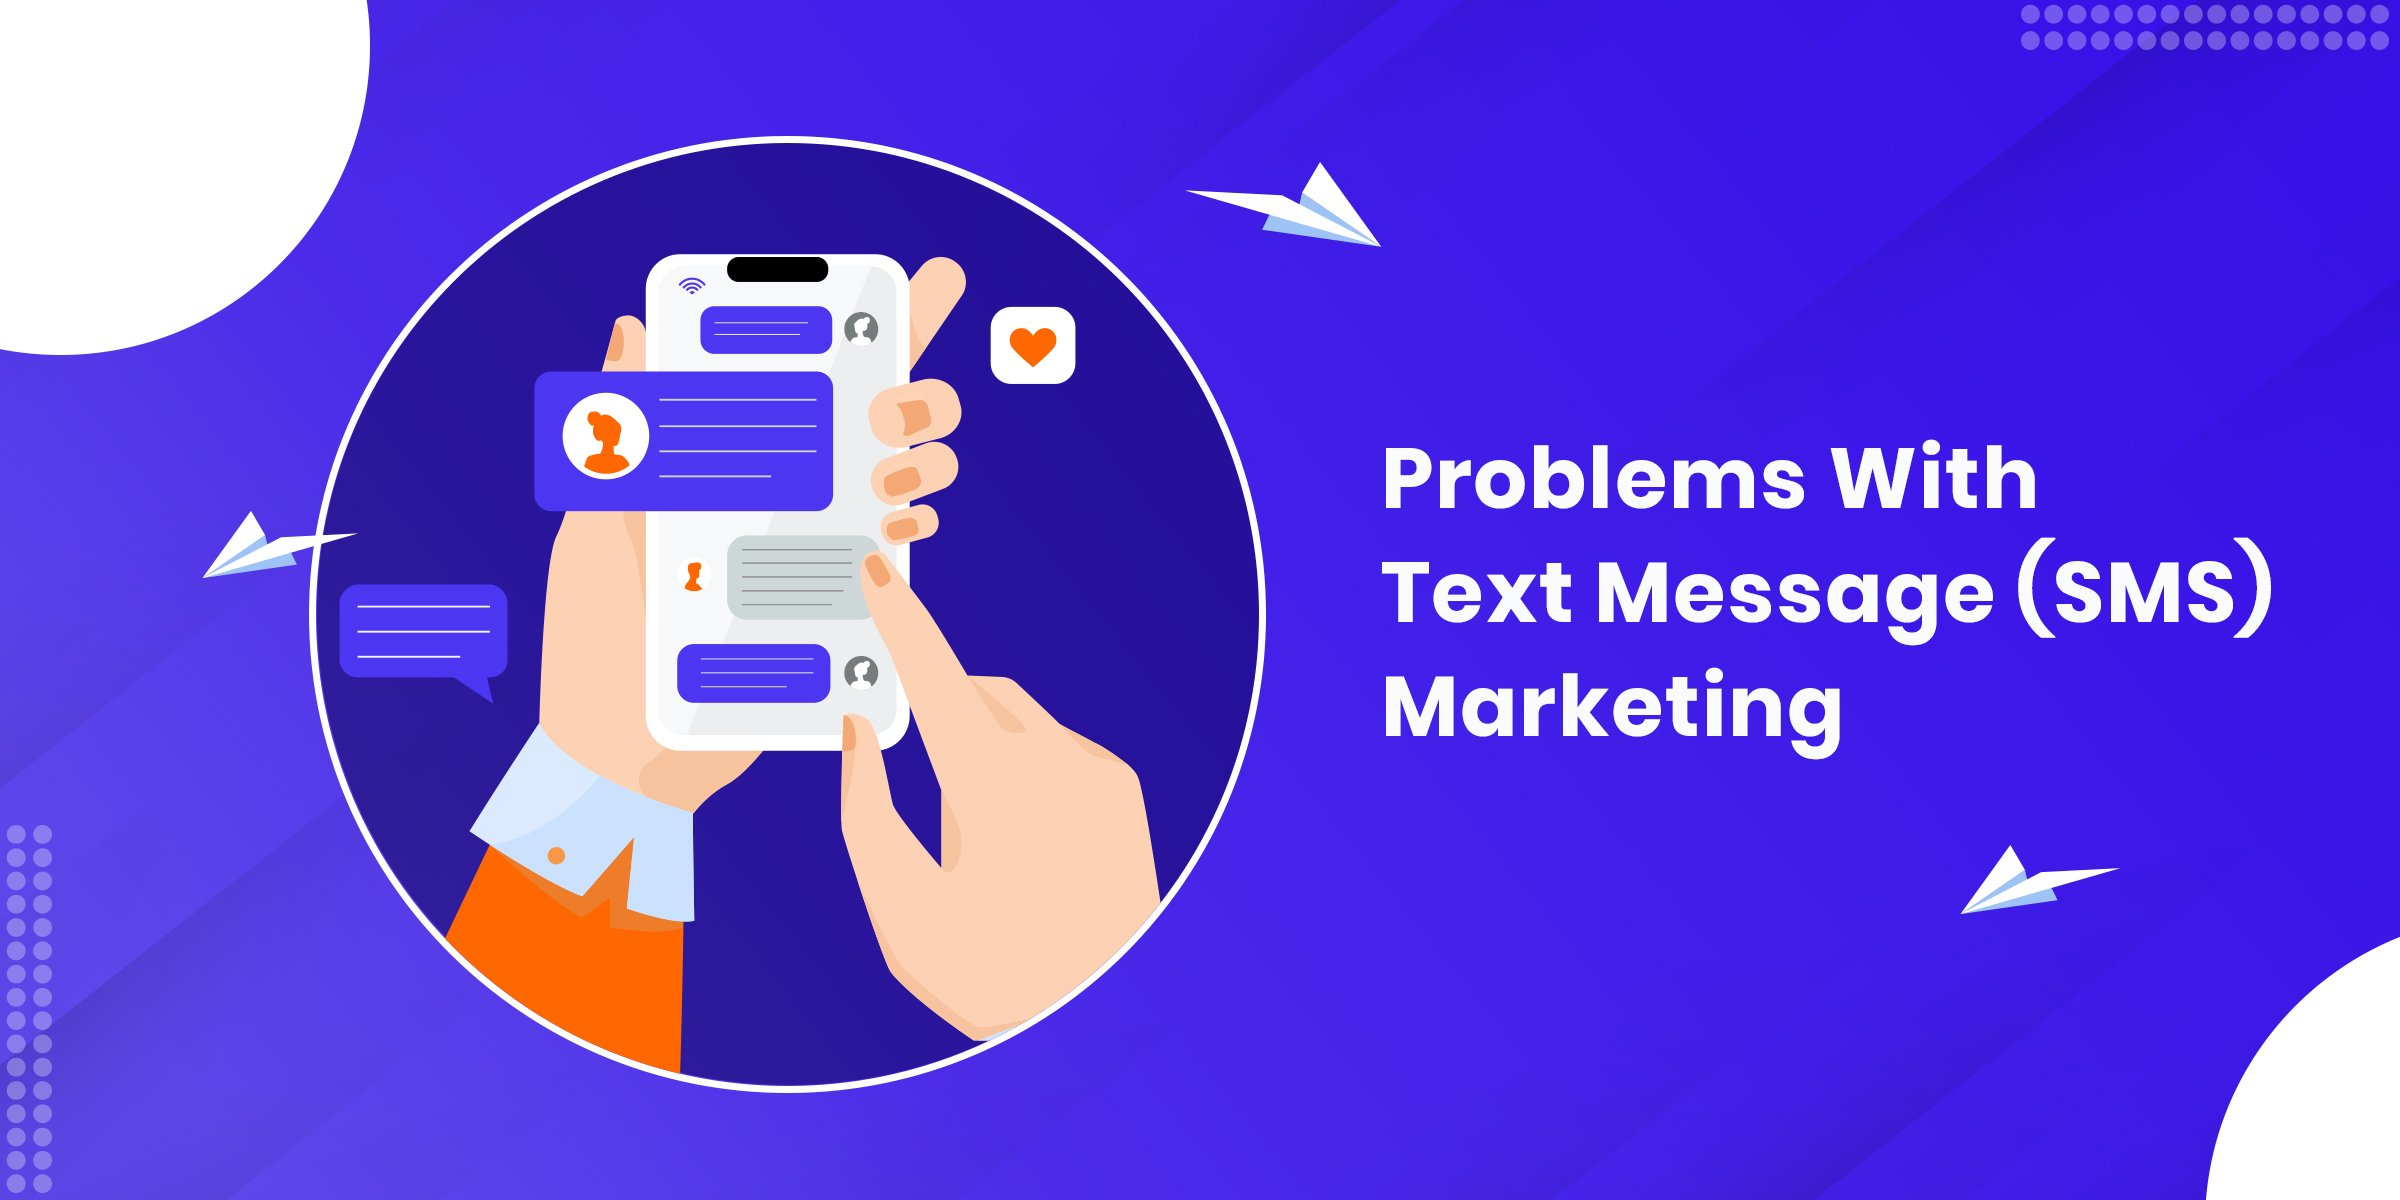 Problems With Text Message (SMS) Marketing